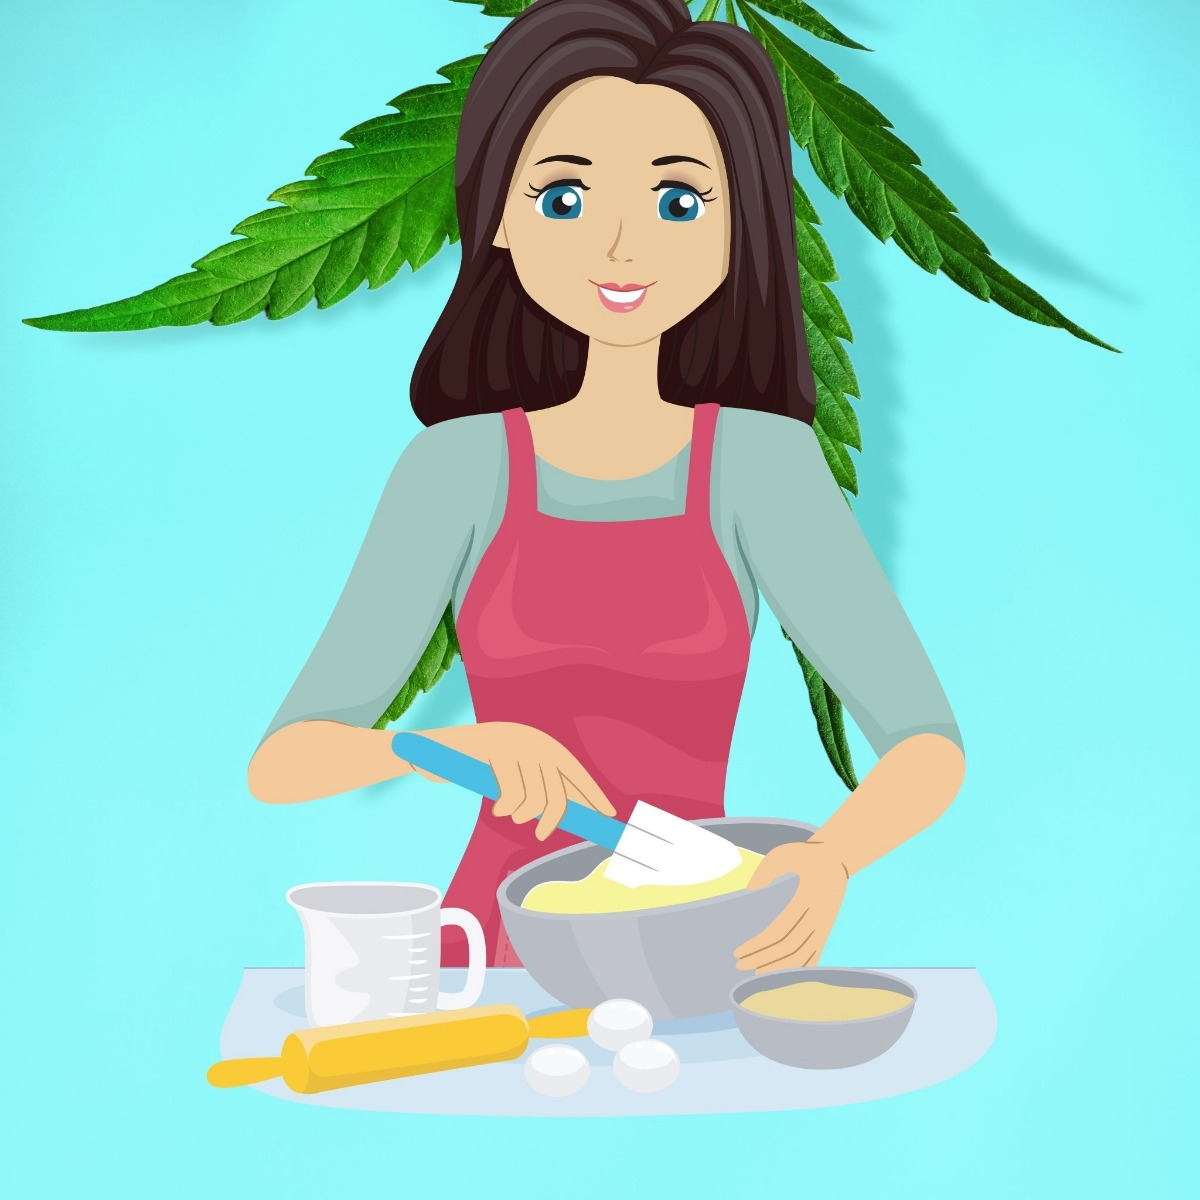 CBD being baked in the kitchen by a woman